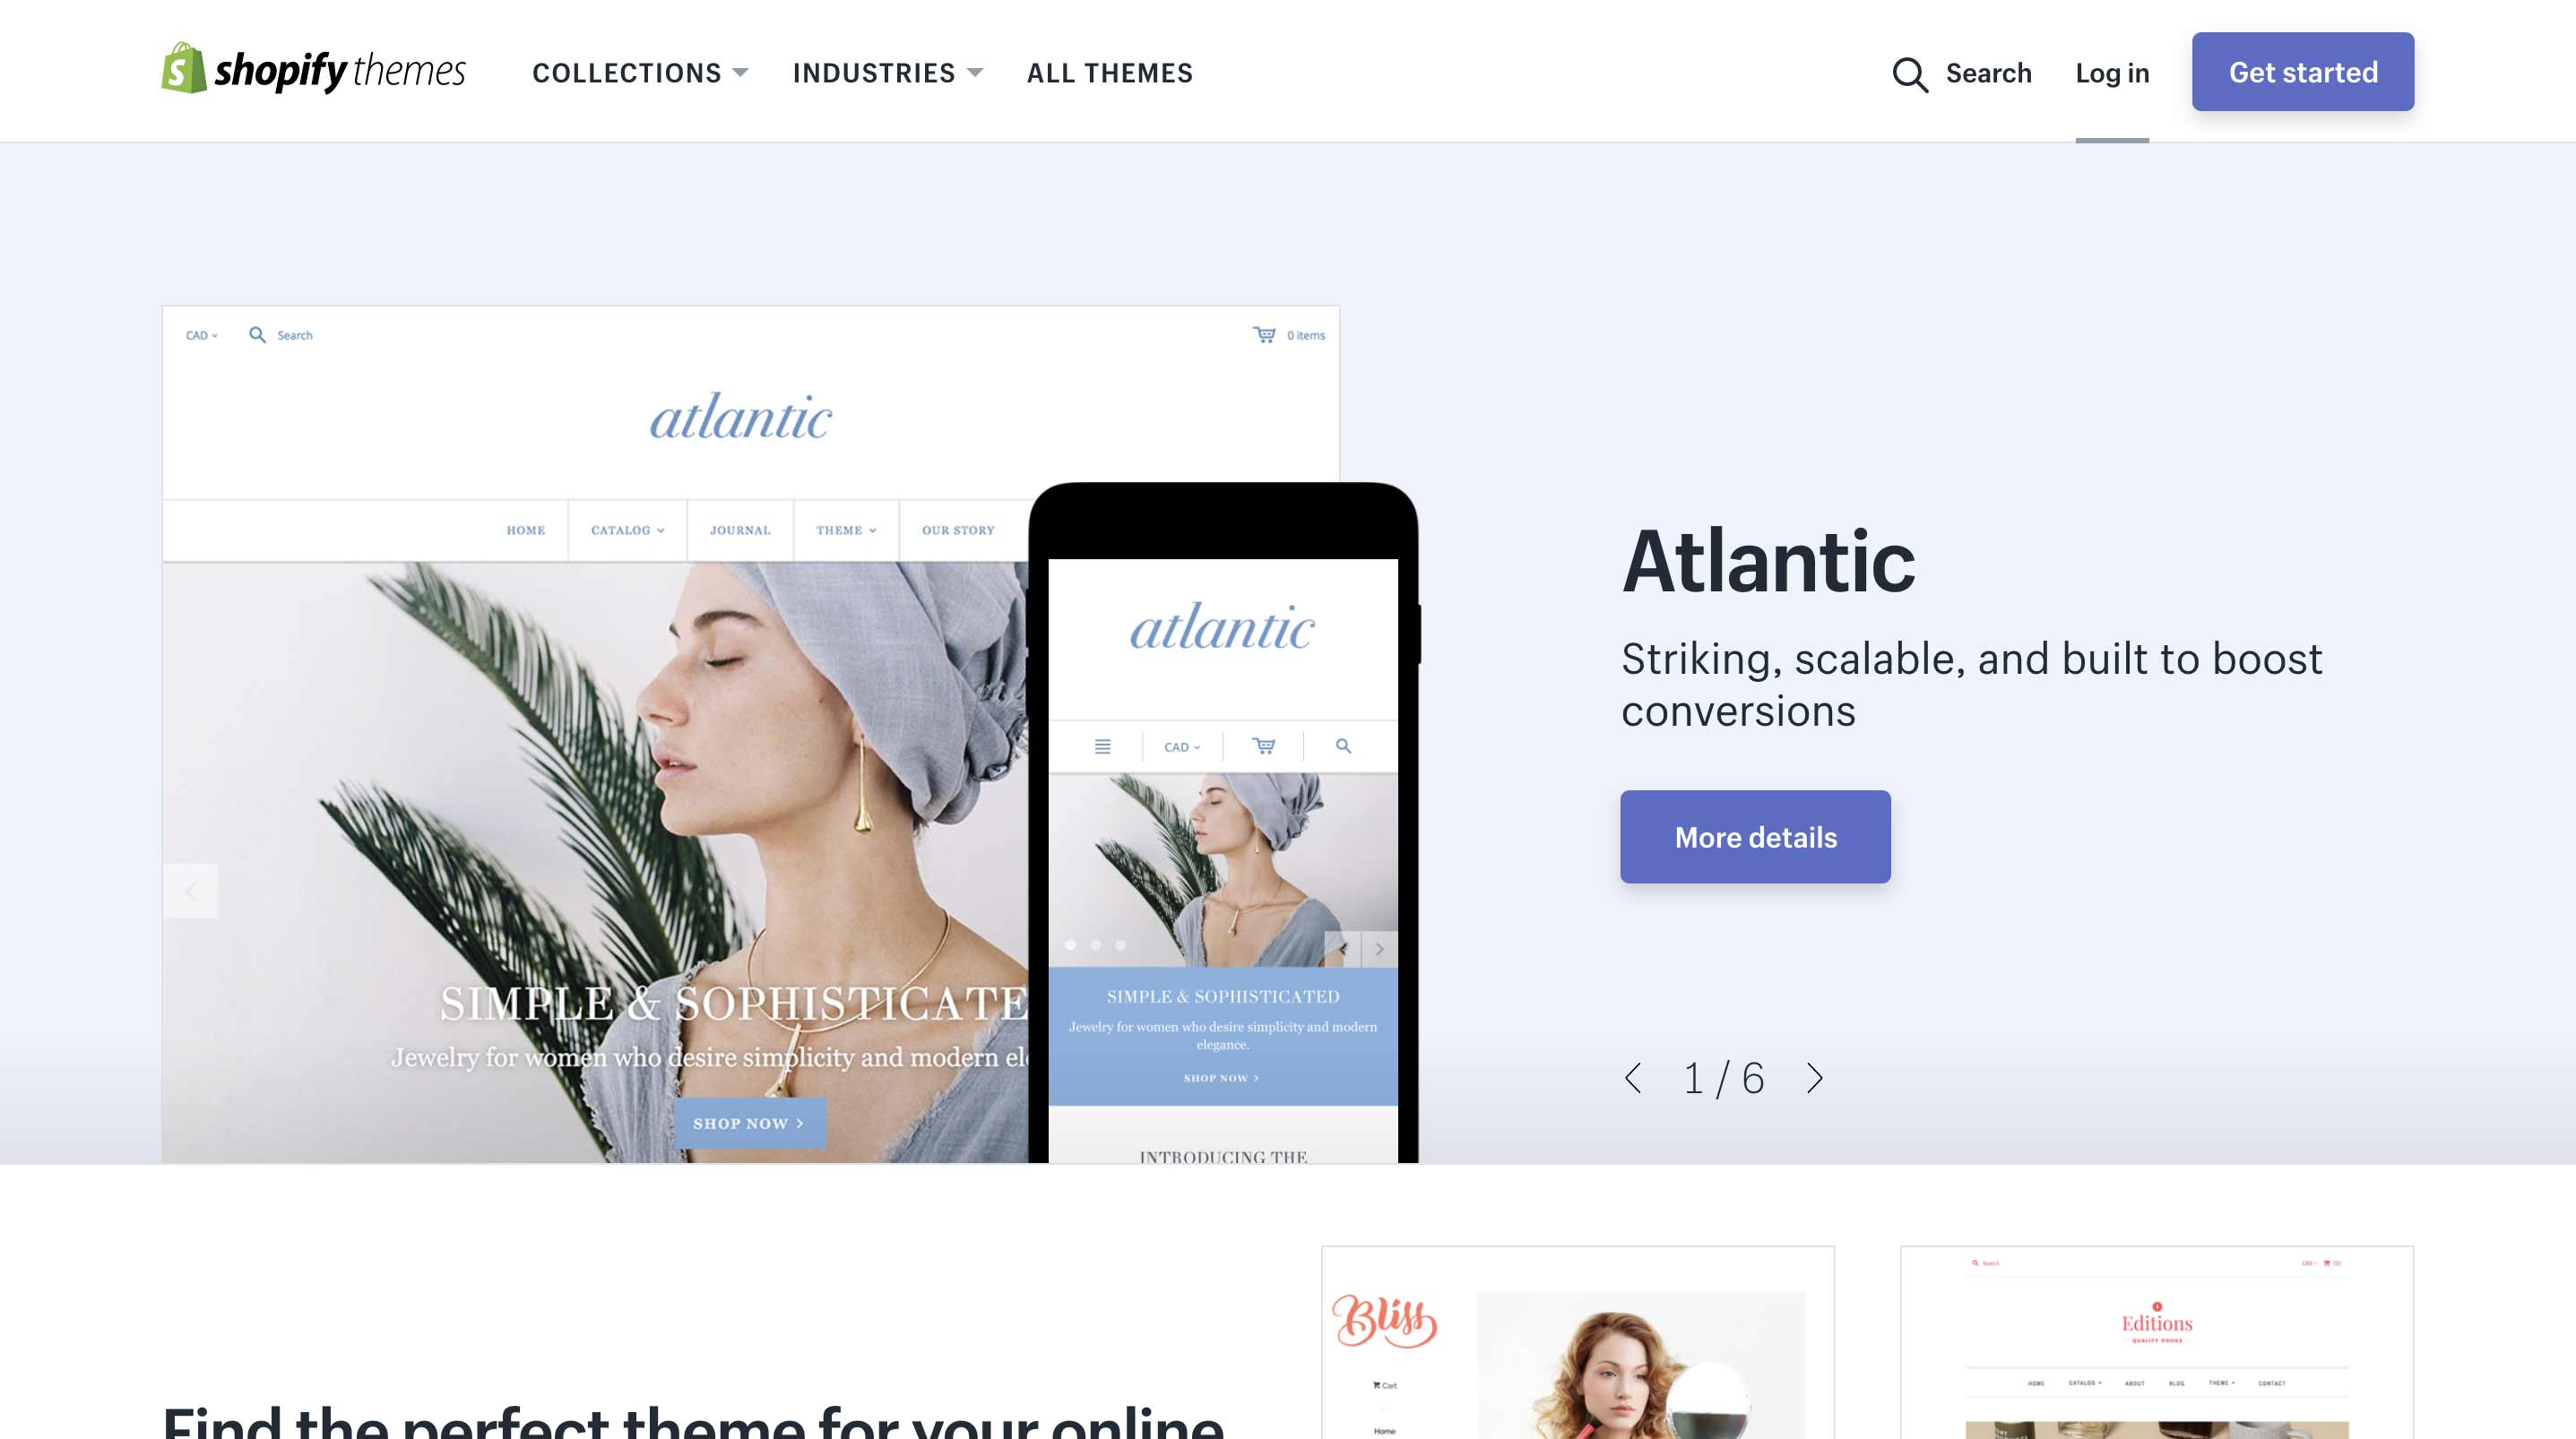 Shopify Theme Store Has Many Options